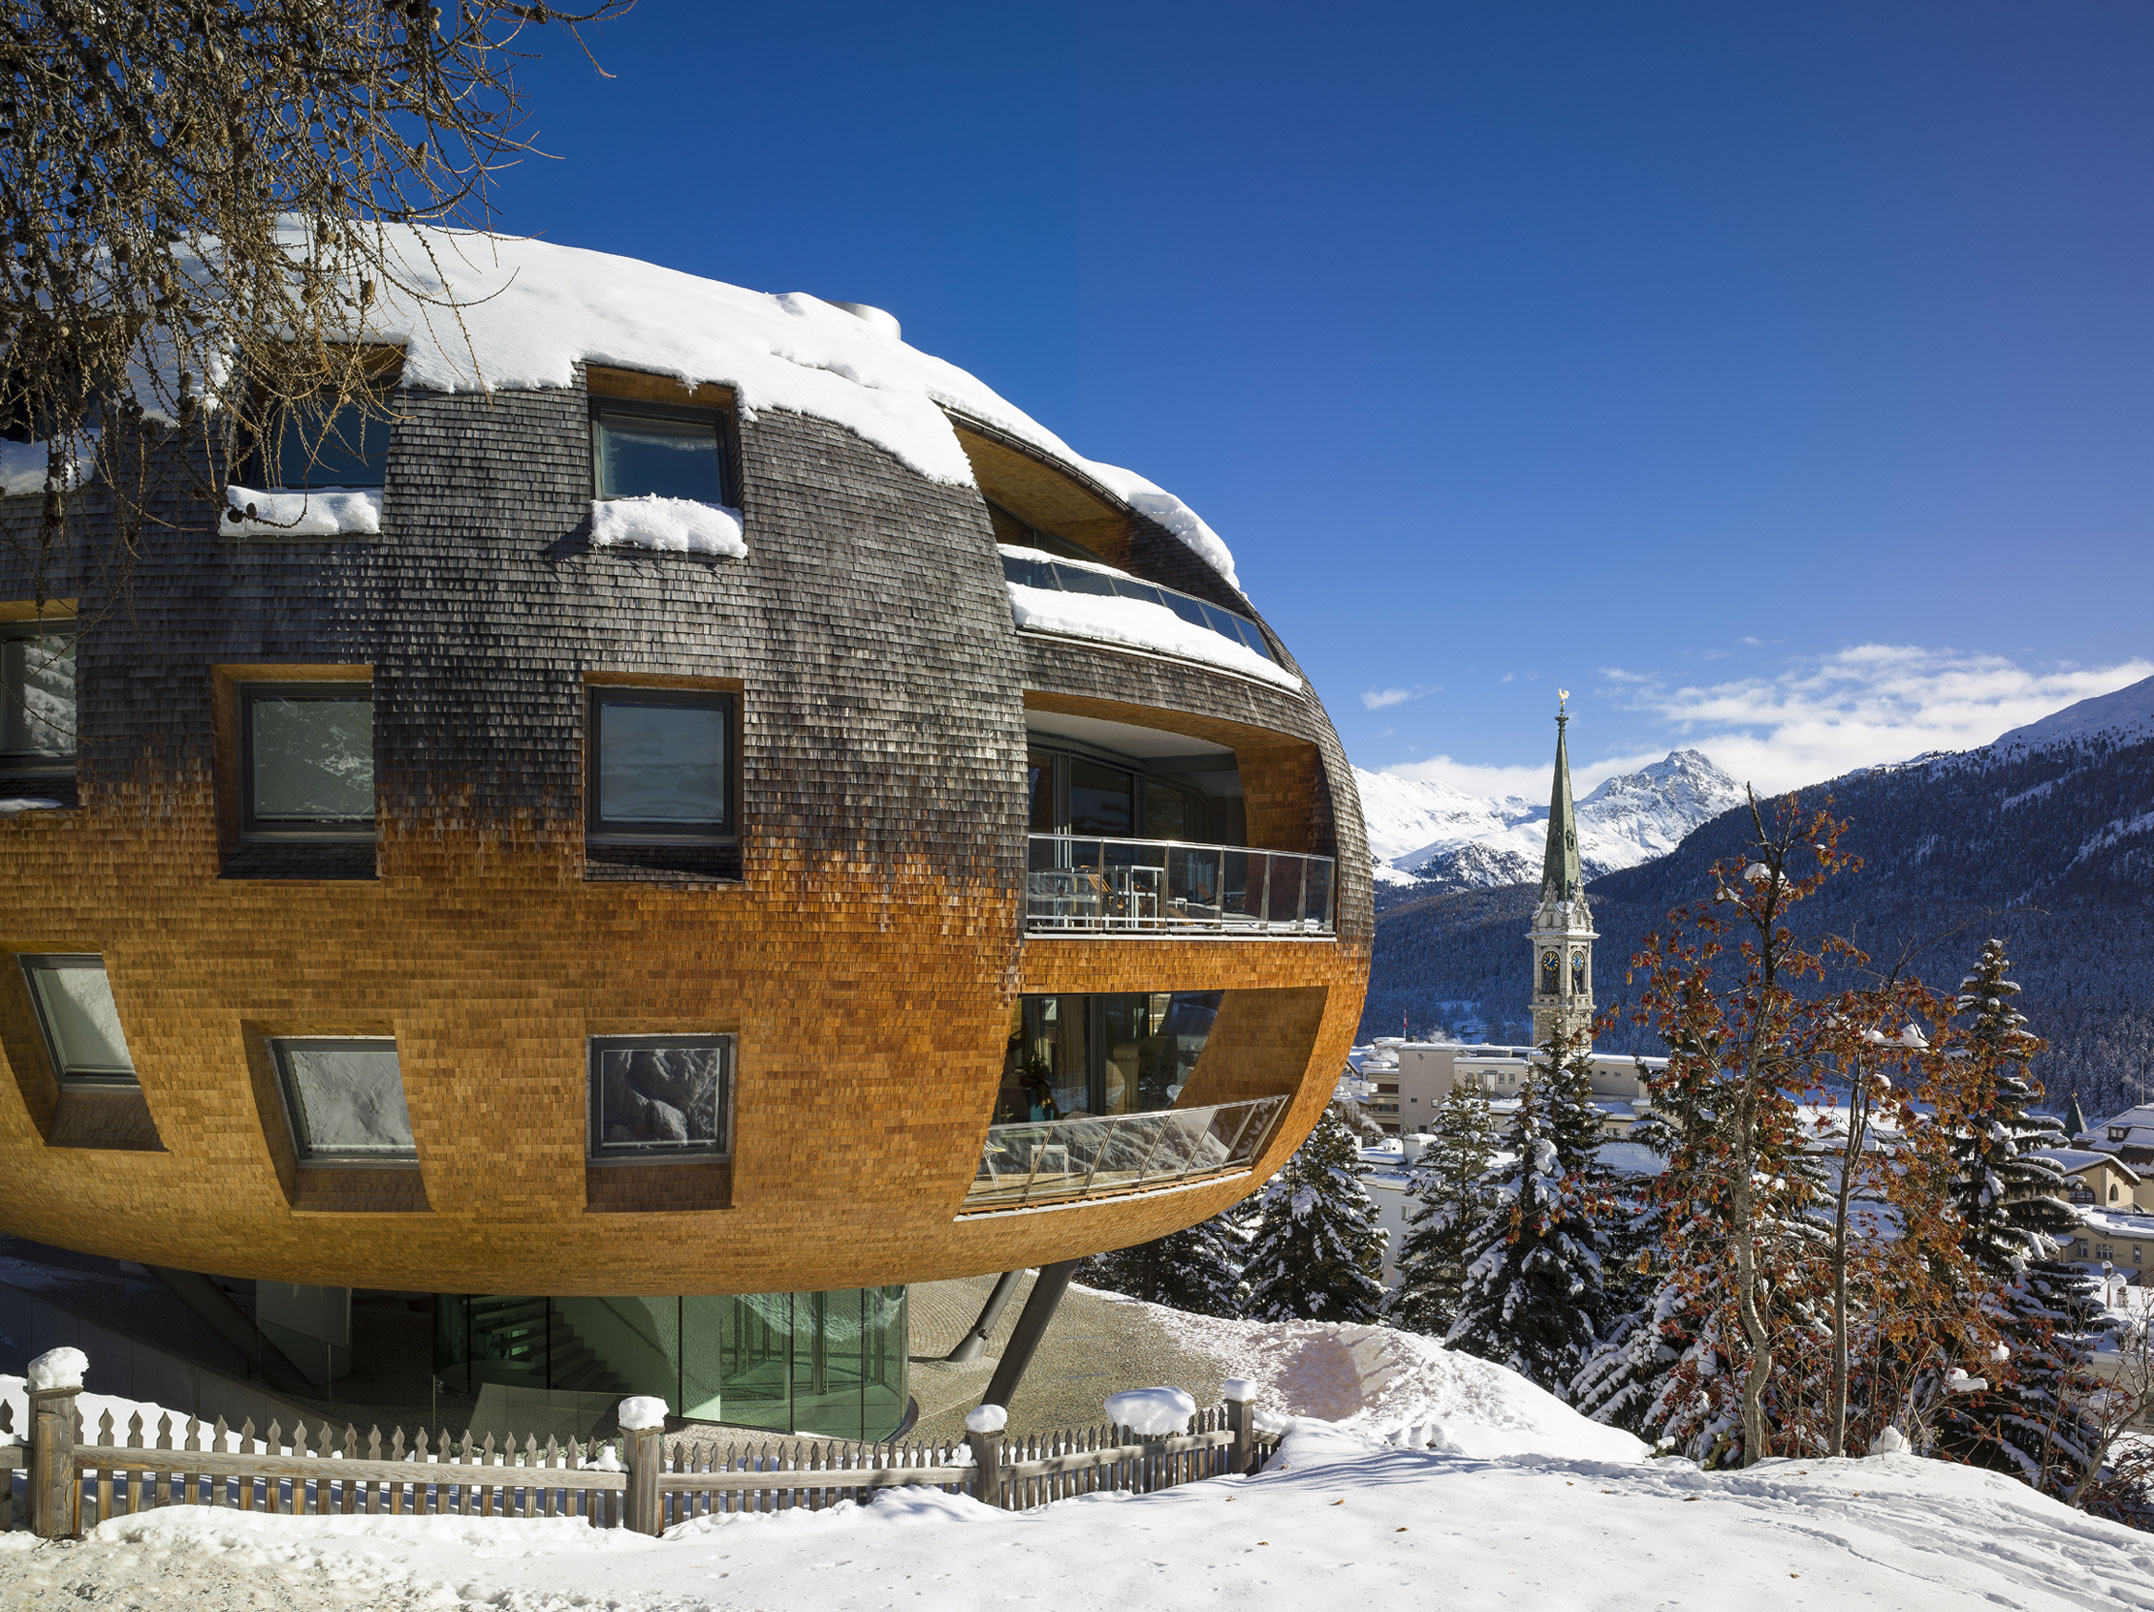 Chesa Futura, the creation of British architect Sir Norman Foster, has a prized location in St. Moritz. The world's first winter resort, this exclusive Alpine village has hosted the 1928 and 1948 Winter Olympics, and the 2017 Alpine World Ski Championships. St. Moritz's legendary champagne climate and traditional village atmosphere have been a draw for the cream of society since 1864.